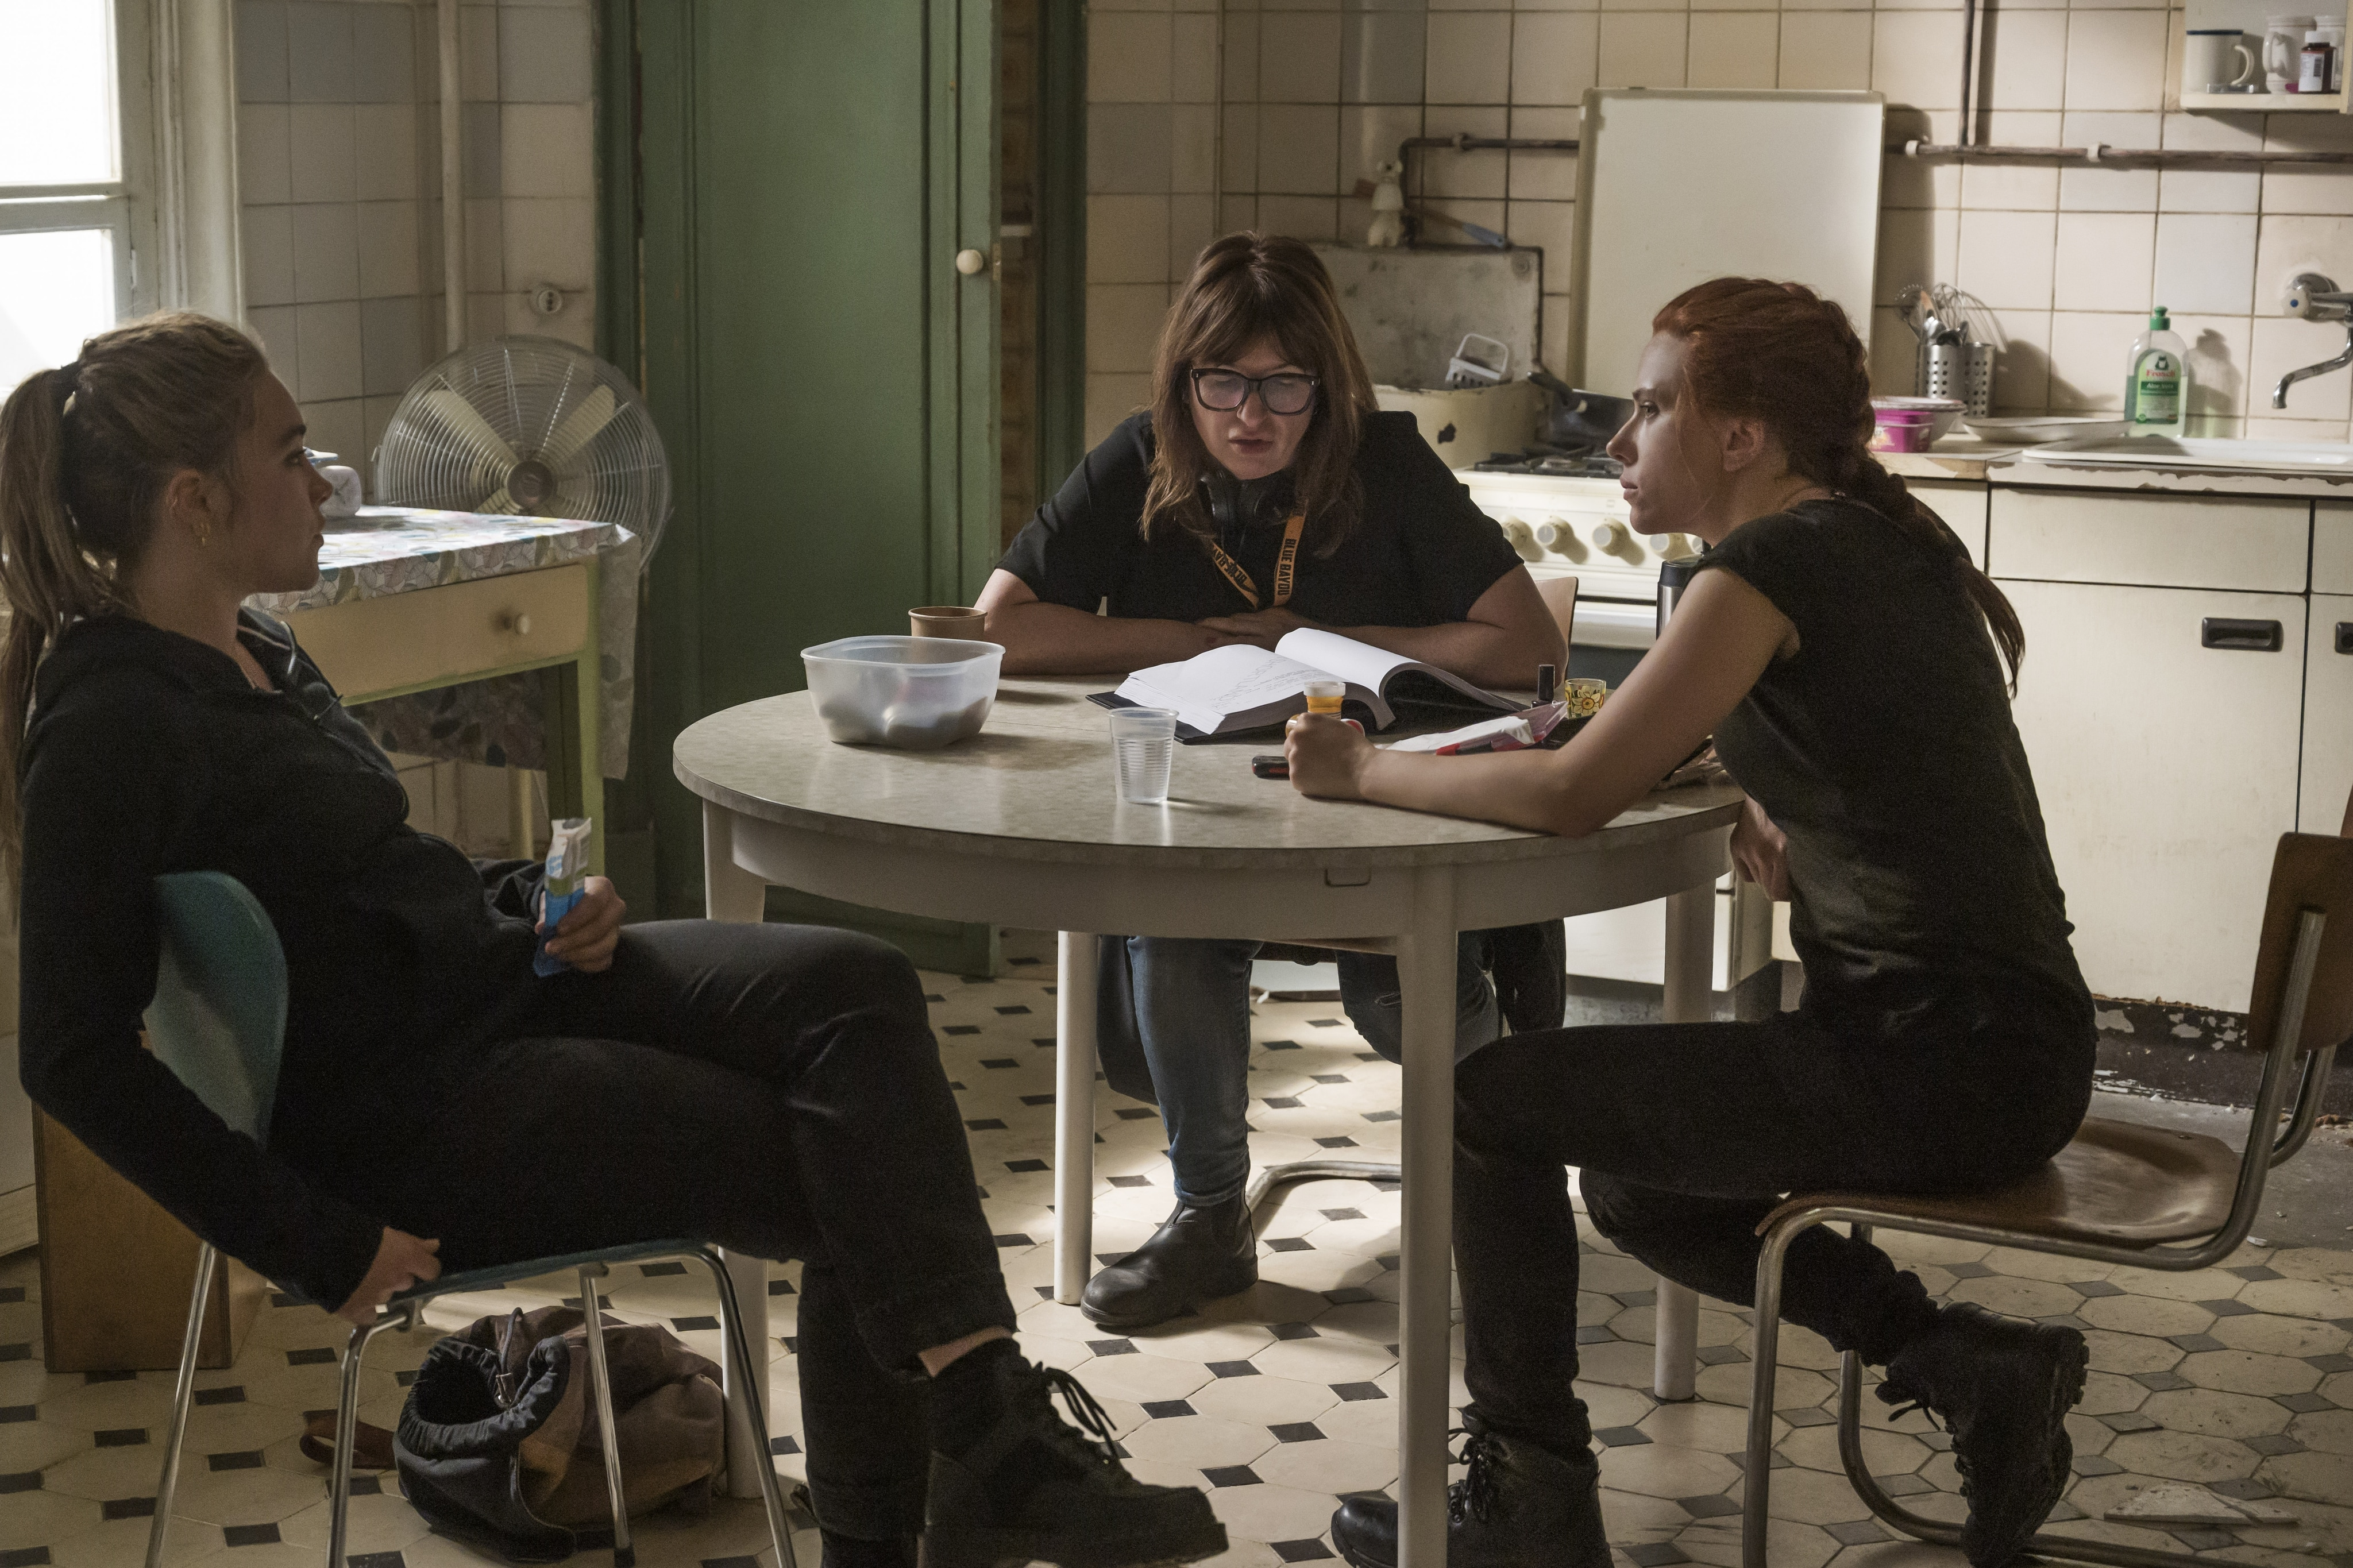 Scarlett Johansson and Florence Pugh Behind-the-Scenes of Black Widow with Director